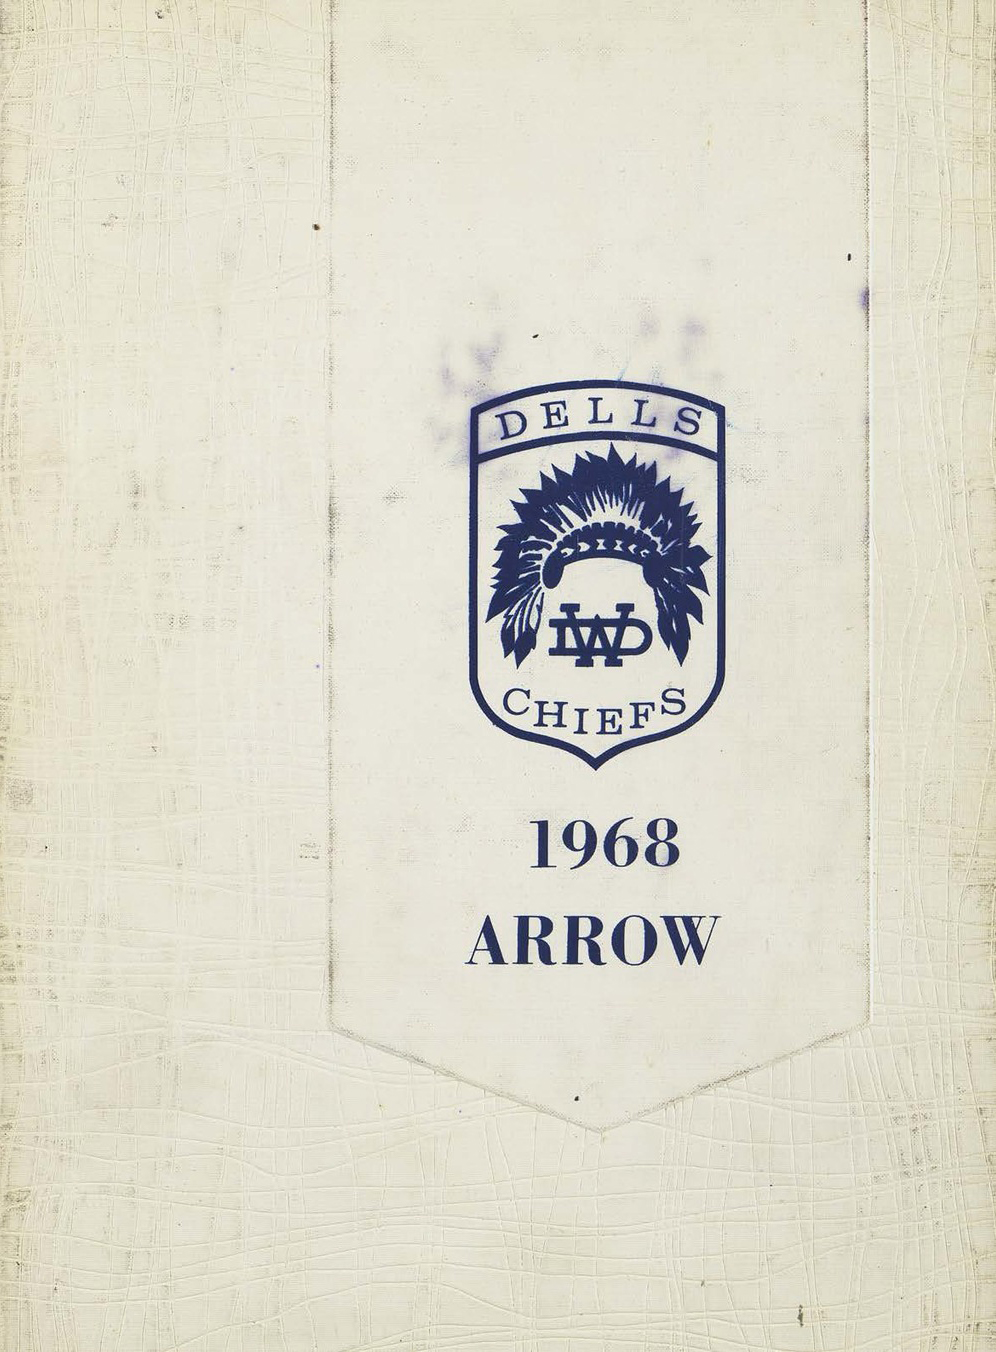 The Arrow 1968